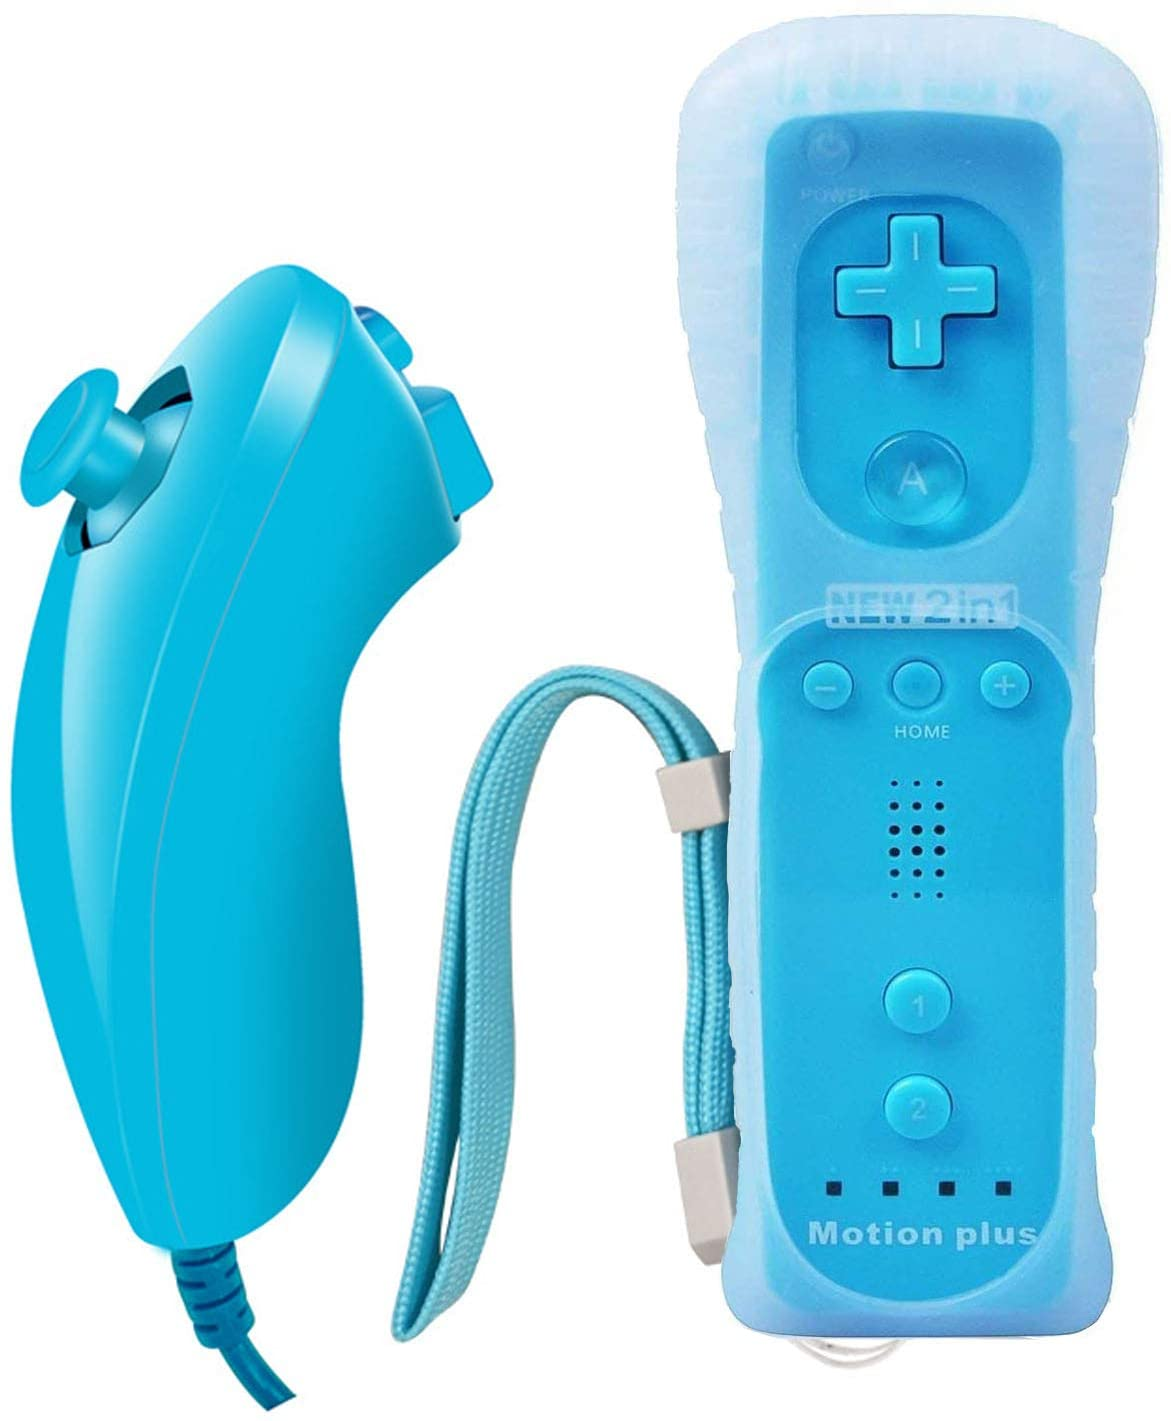 Wii Nunchuck Controller Motion Plus,Built-in 2 in 1 Remote Motion Nunchuck Controller,Replacement Remote Game Controller with Silicone Case and Wrist Strap for Nintendo Wii and Wii U (Blue)